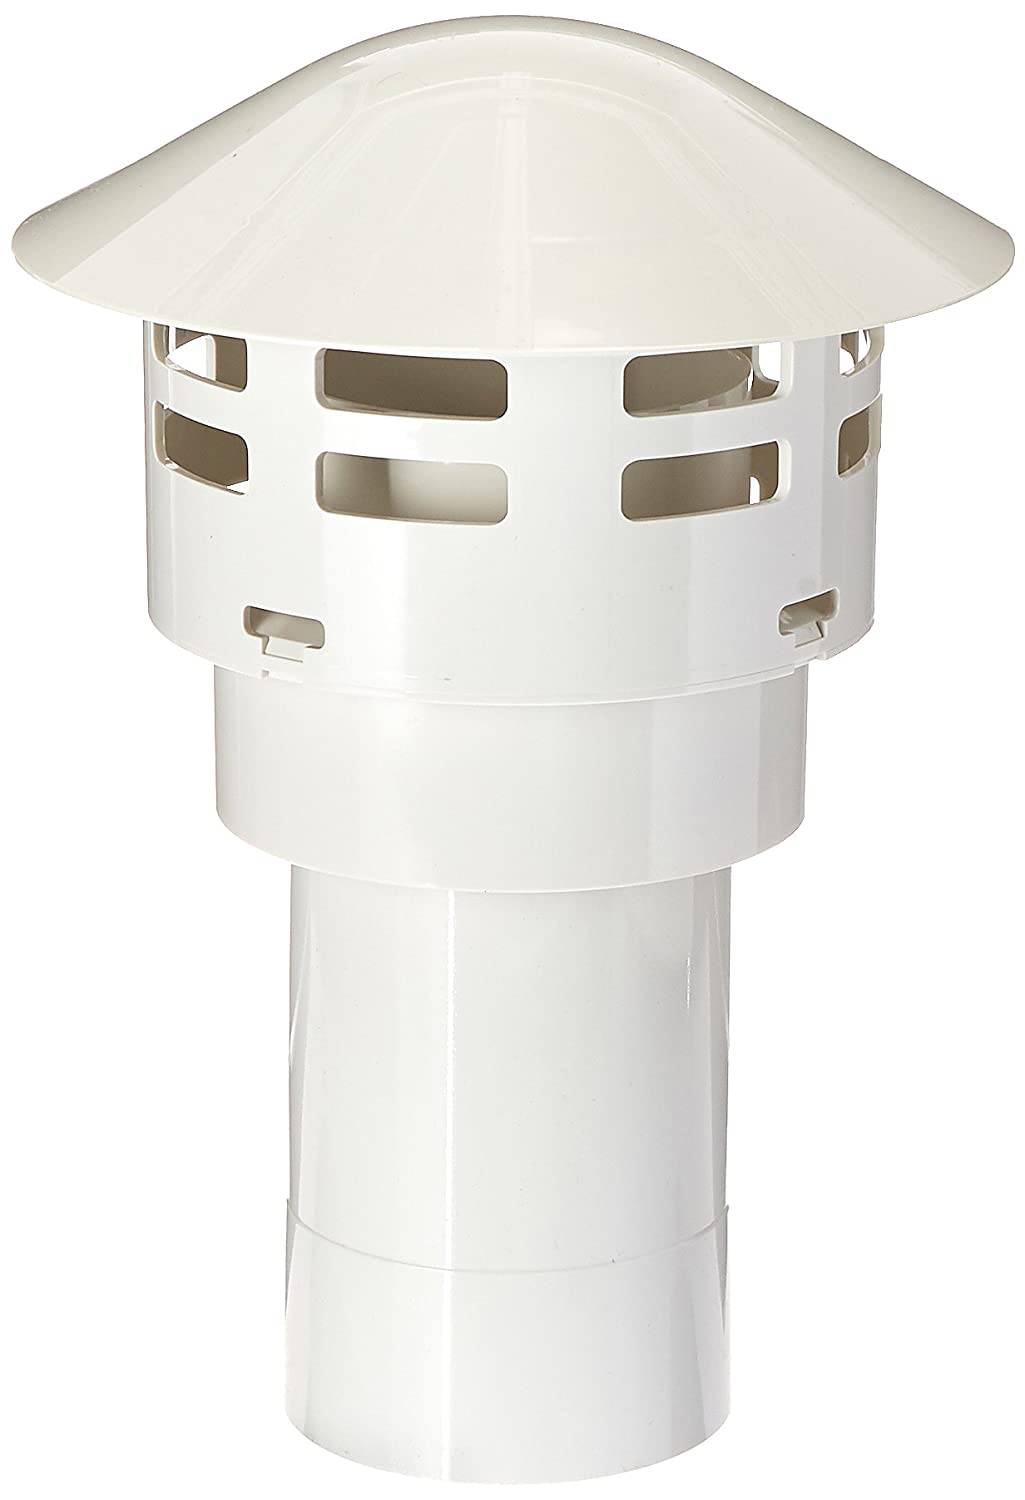 Noritz VK3-PVC-VAS Pvc Concentric Vertical Adapter for Use with Vk3-H-Pvc When Verticle Venting is Required by Noritz B00MBBHUL8